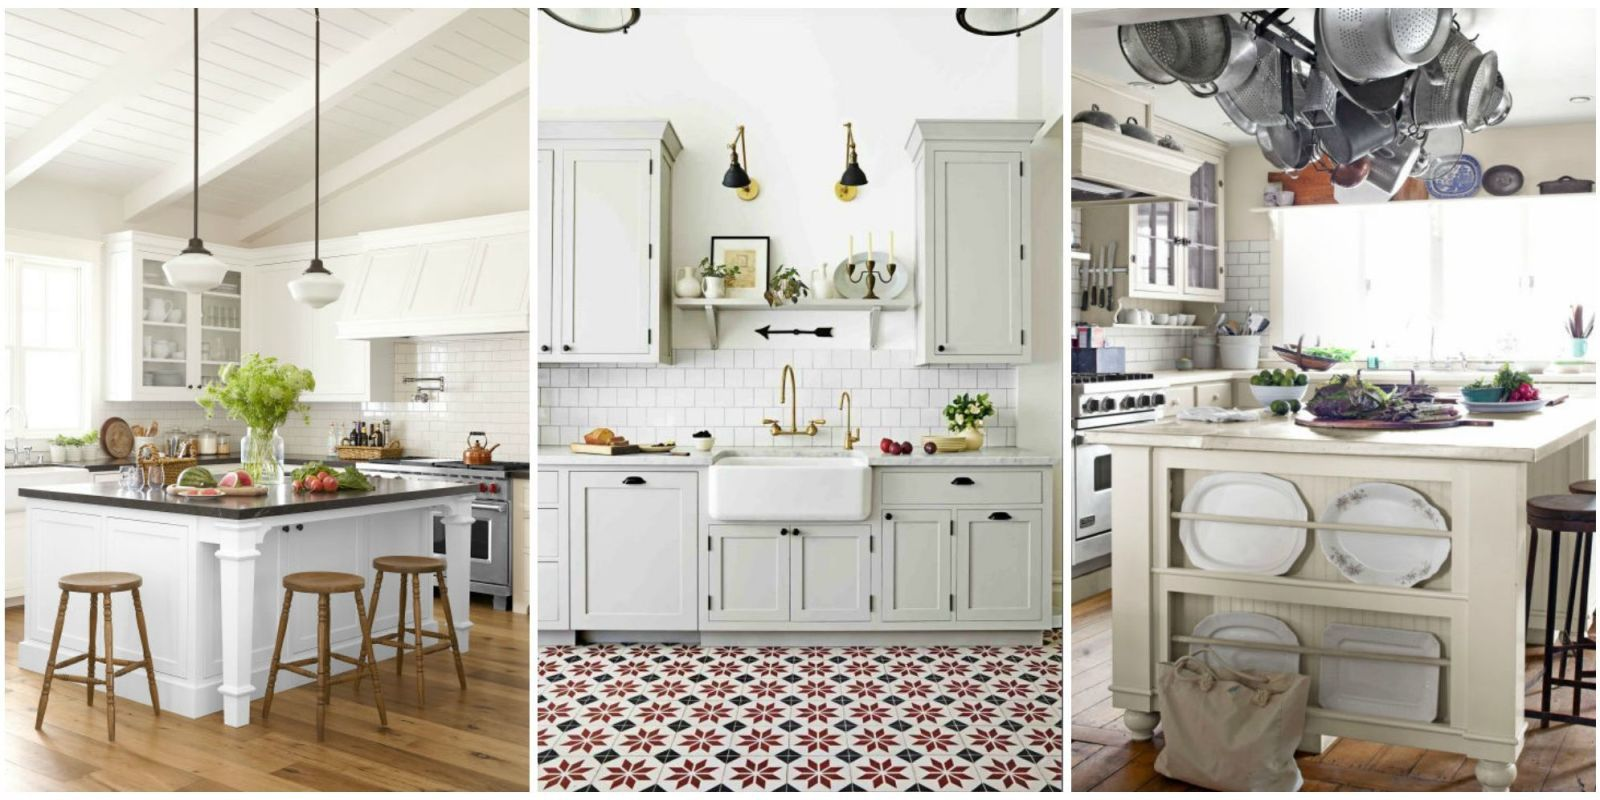 10 Best White Kitchen Cabinet Paint Colors - Ideas for Kitchen with